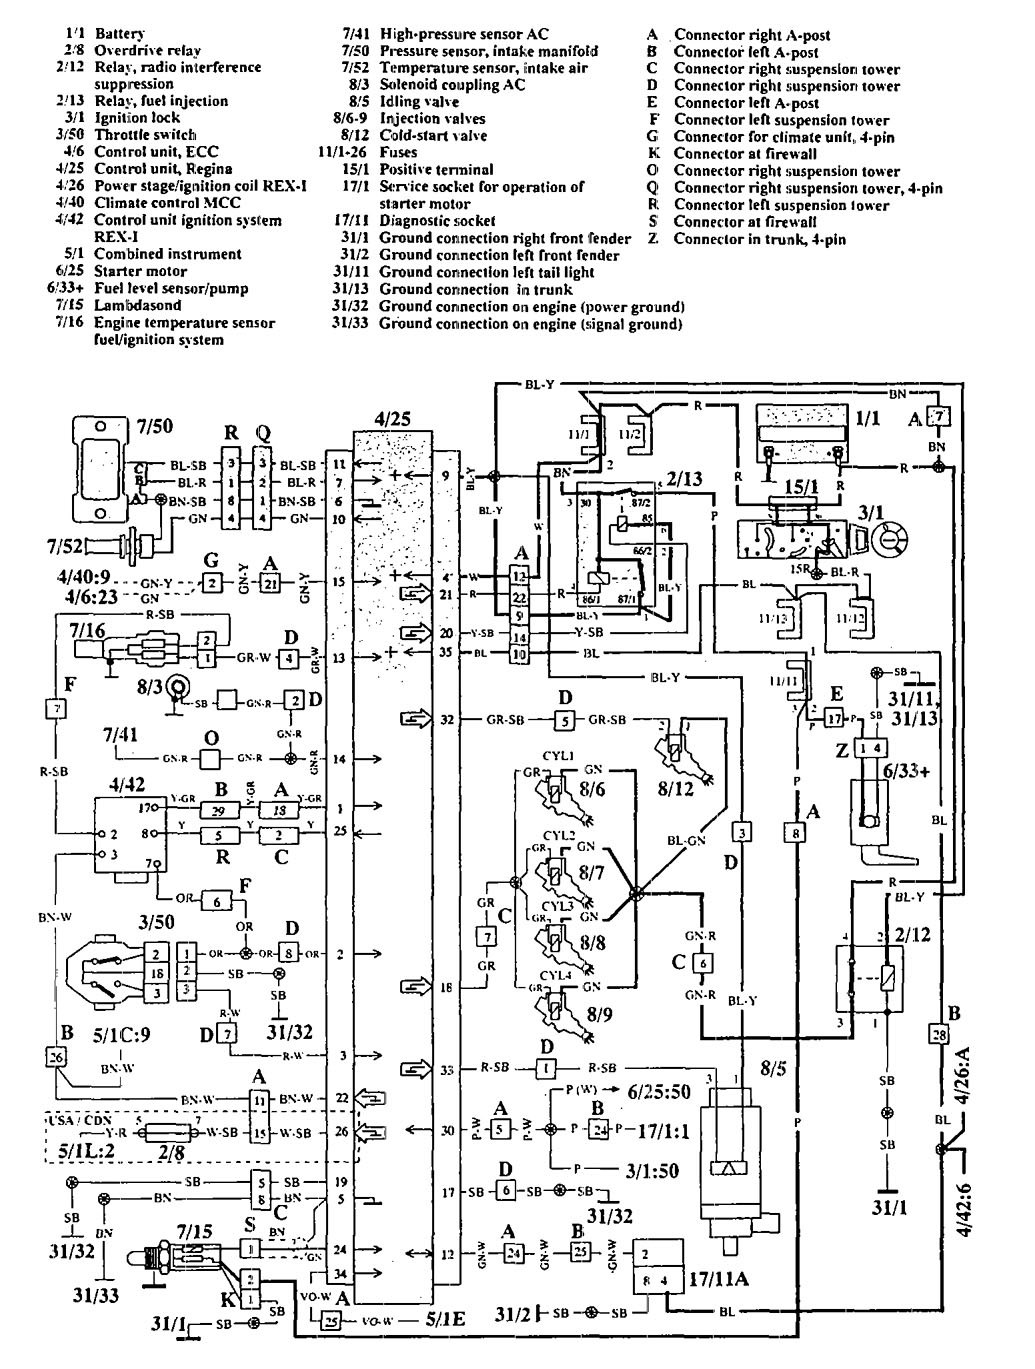 medium resolution of 1992 940 gl wiring diagram manual e book asco 940 wiring diagram